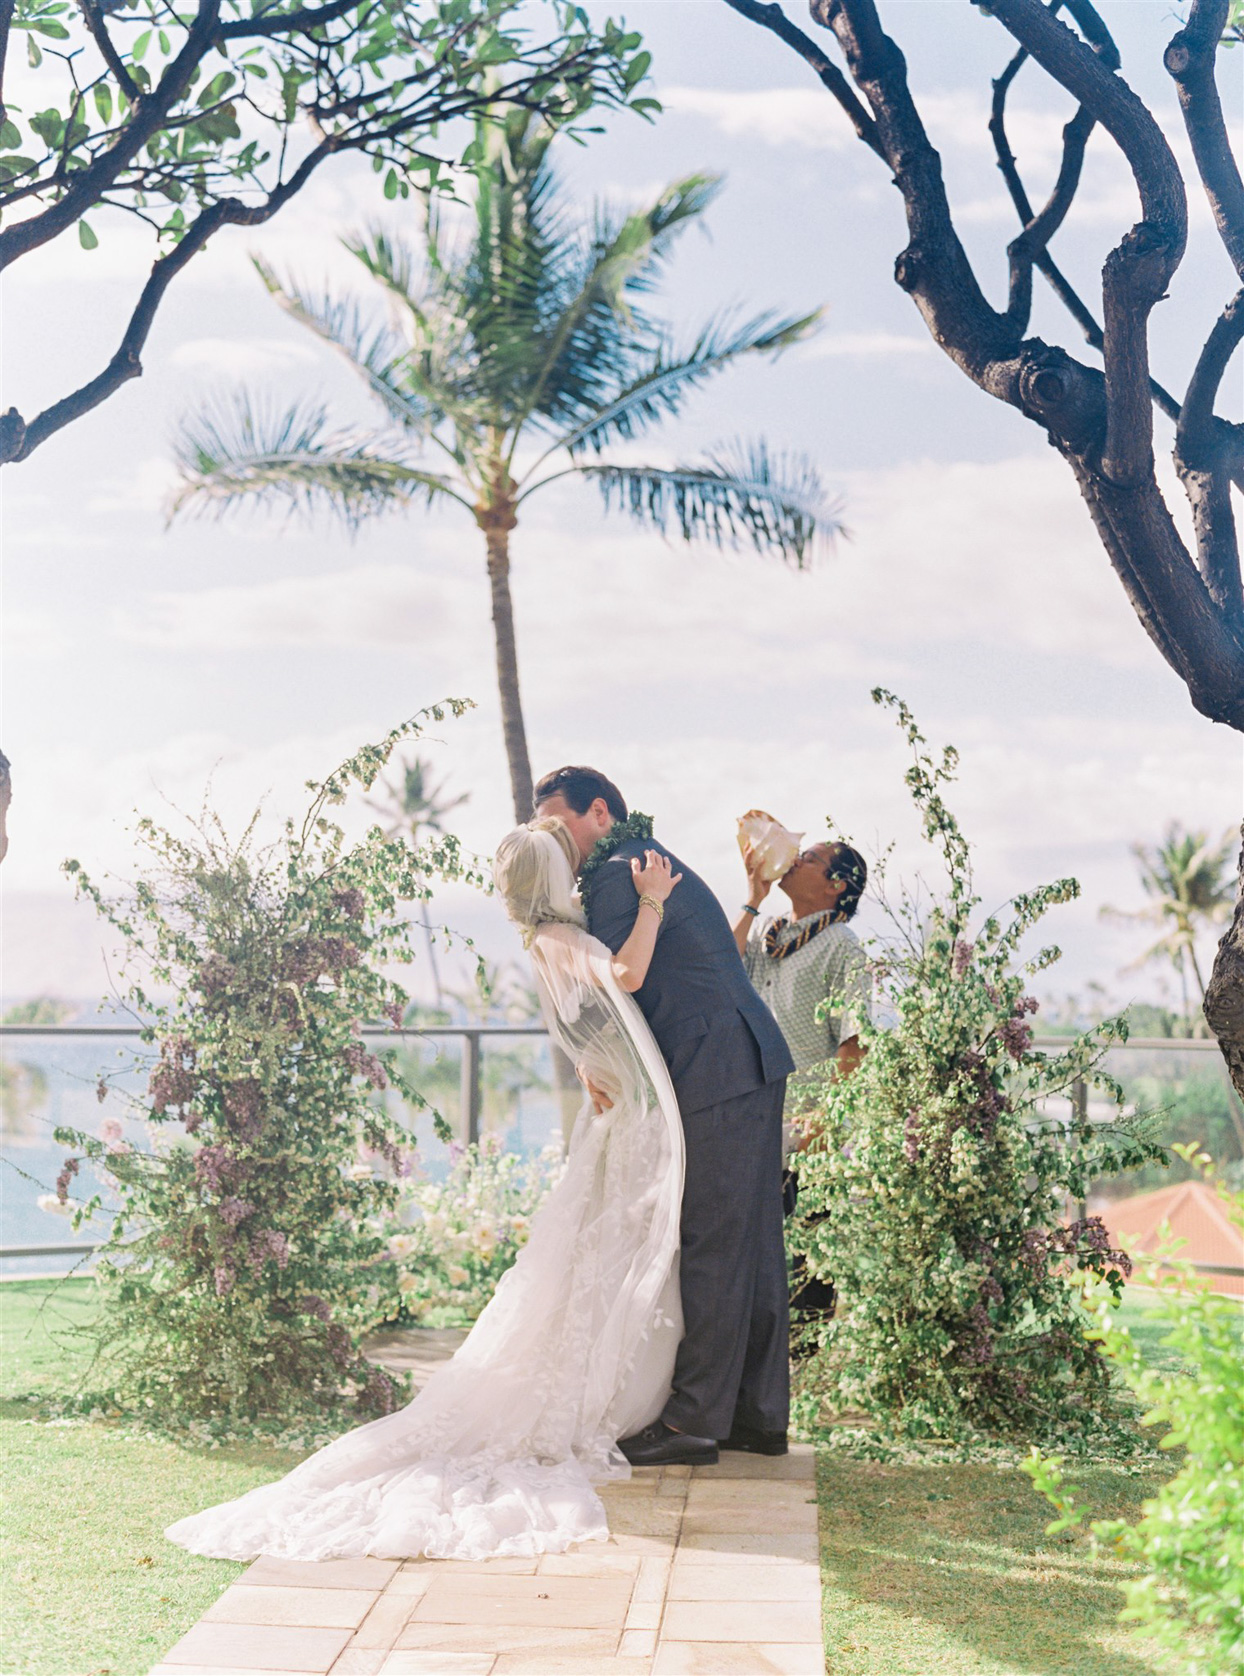 officiant blowing on conch shell bride and groom sharing kiss